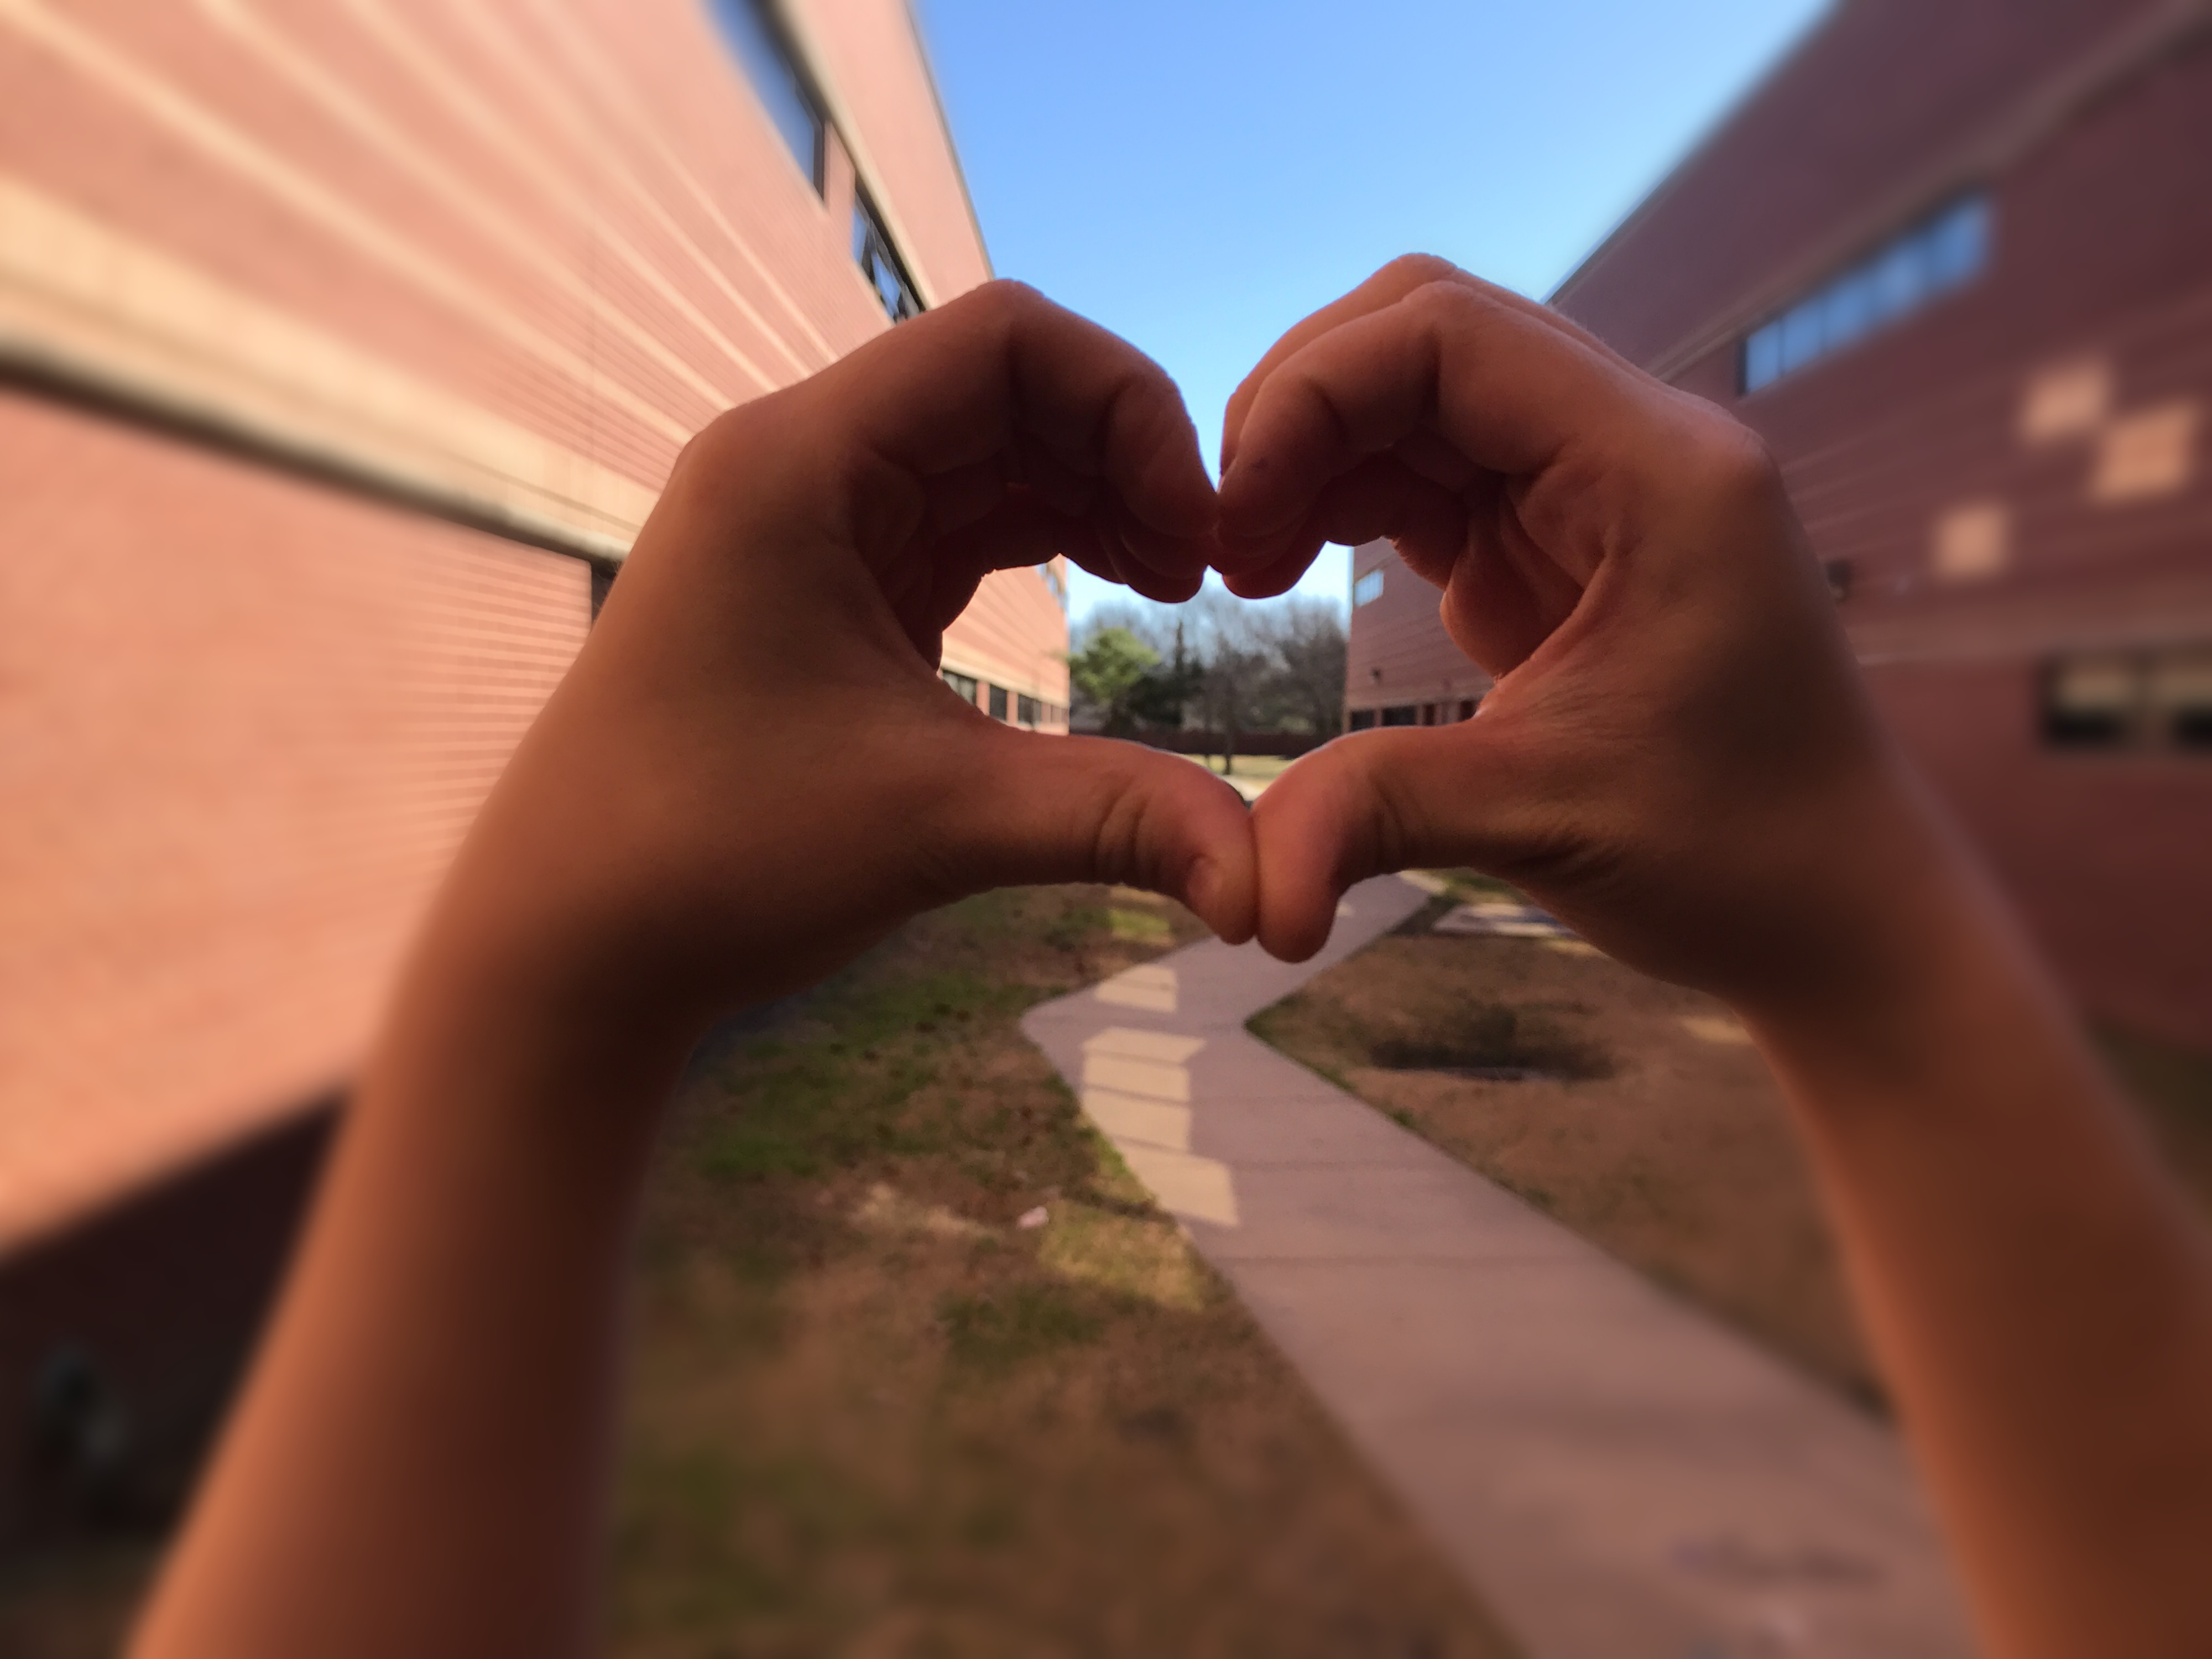 A large number of high school students struggle with fitting in and self-love. Accepting yourself for who you are is important and finding who your true friends are will help you build yourself up. Photo by Megan Winkle.